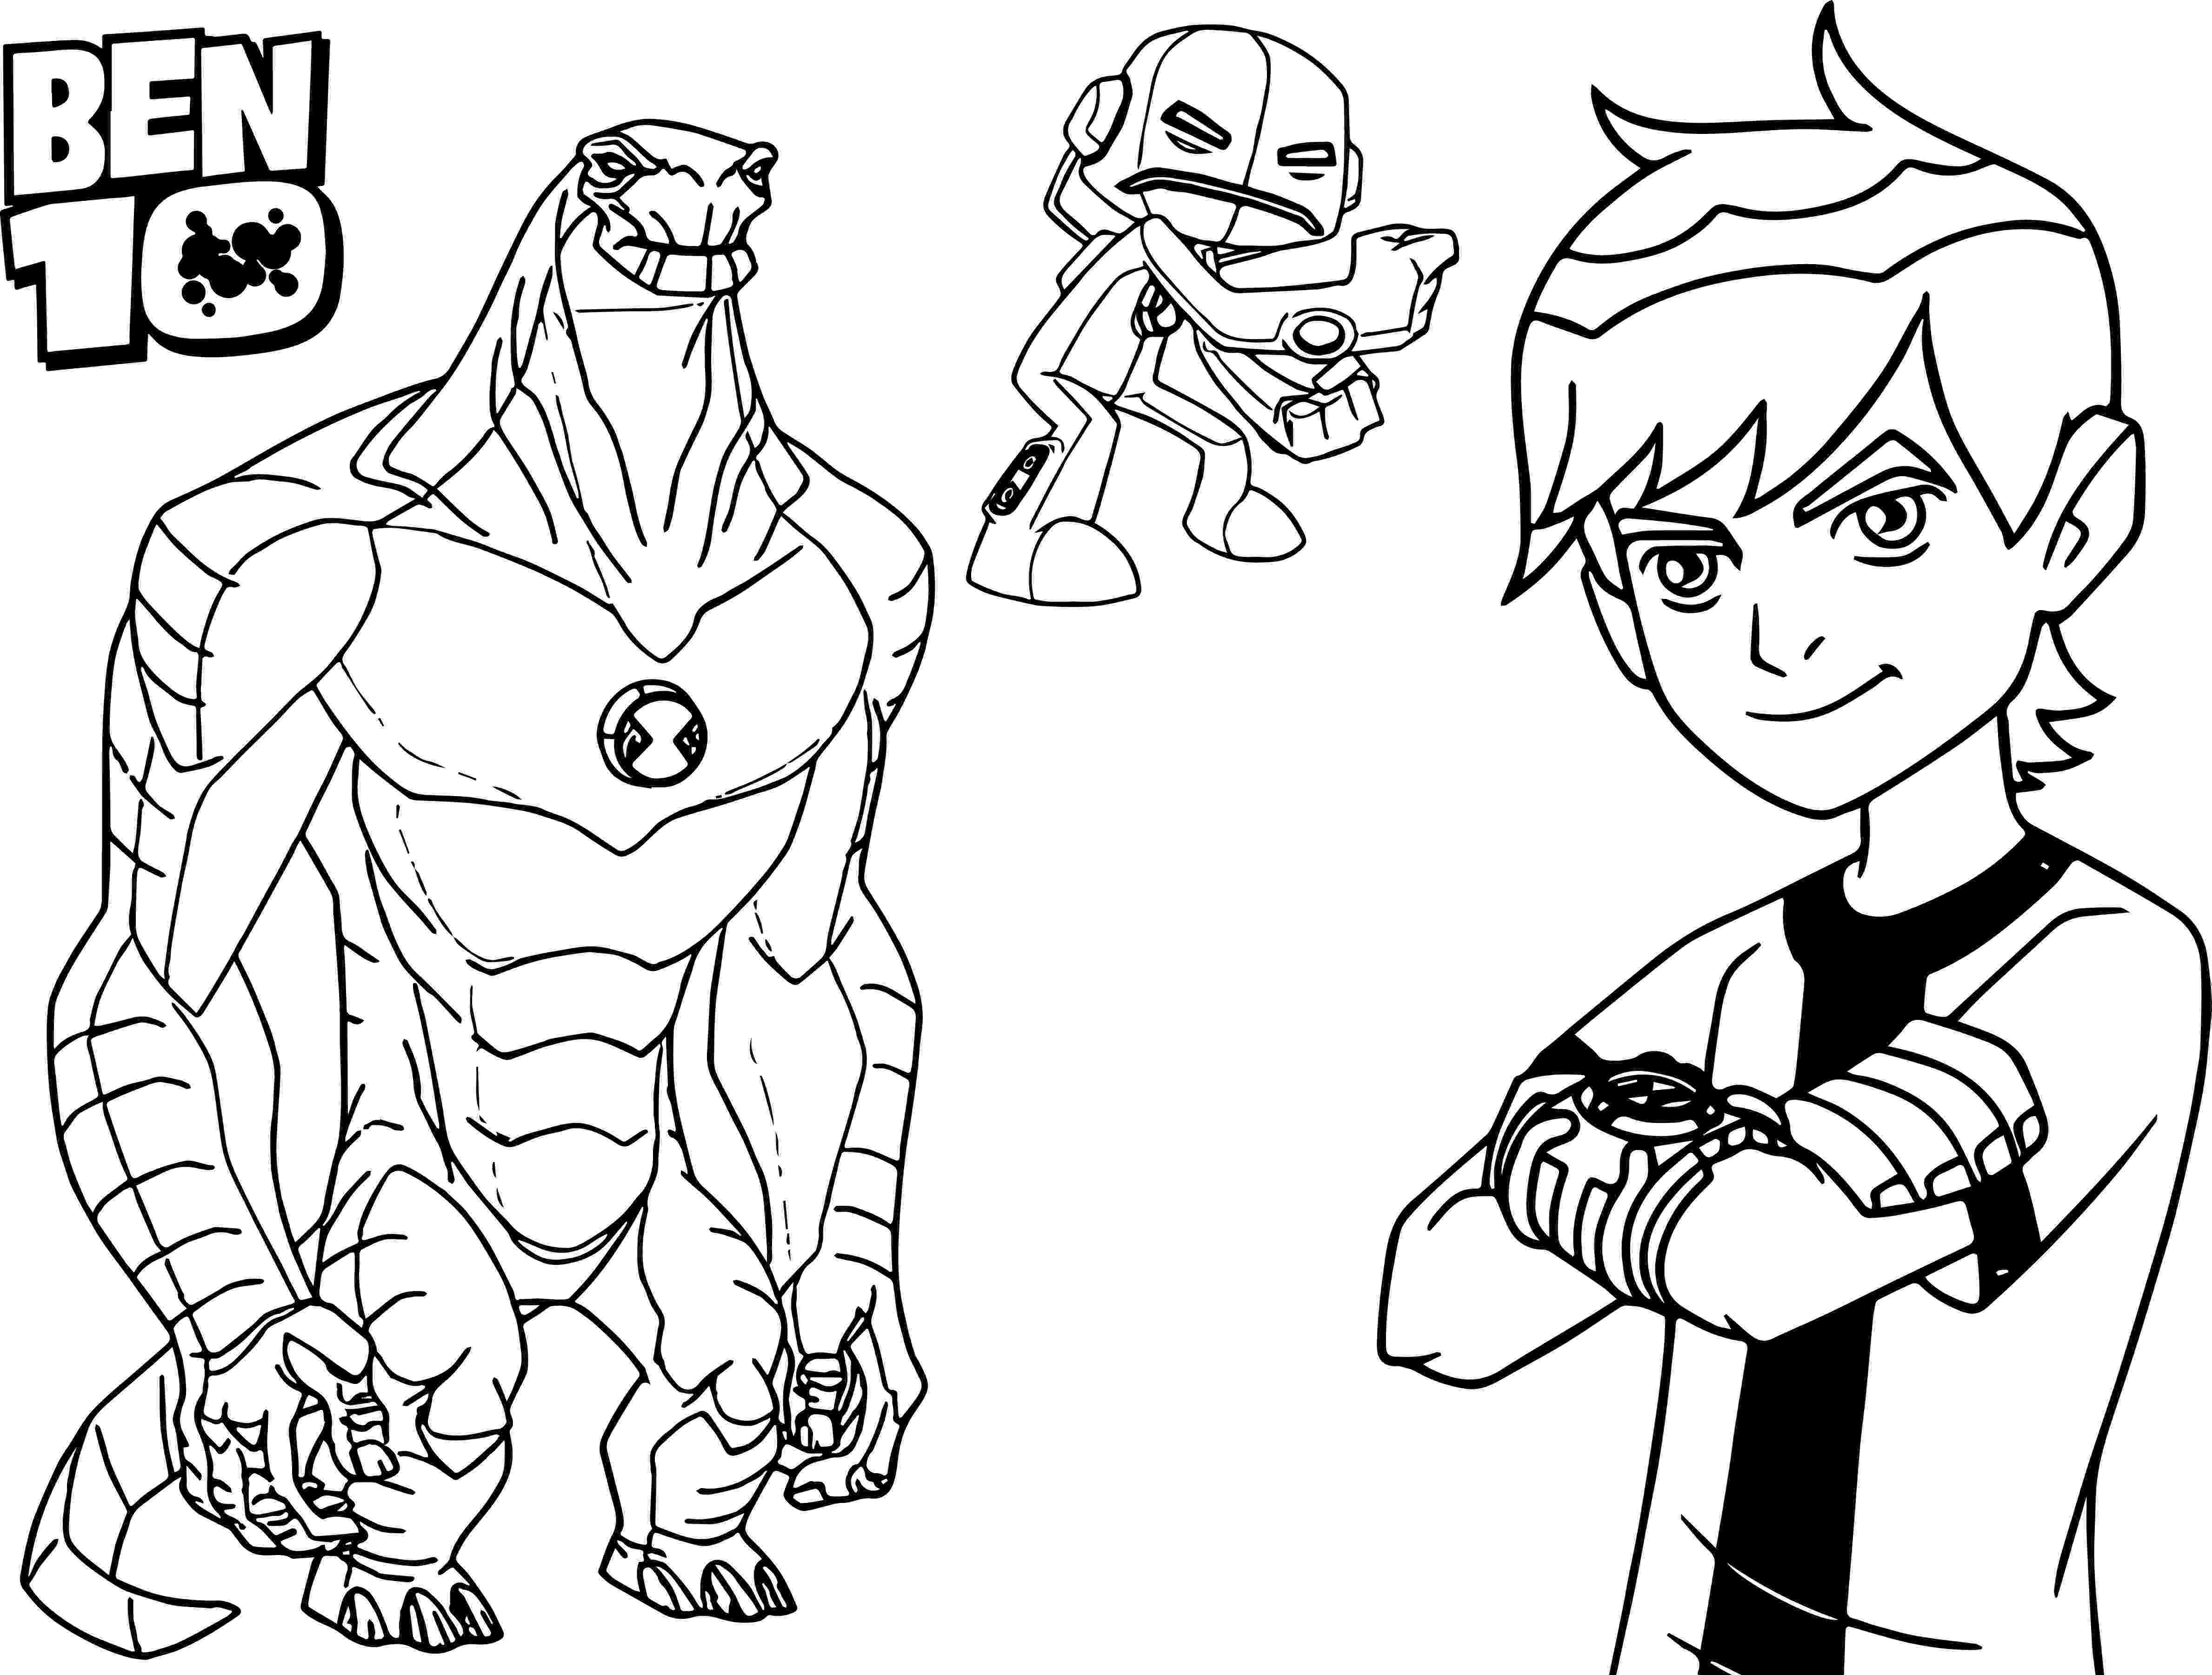 ben 10 ultimate alien coloring pages to print ben 10 water hazard alien ultimate coloring pages alien print 10 ultimate pages to ben coloring